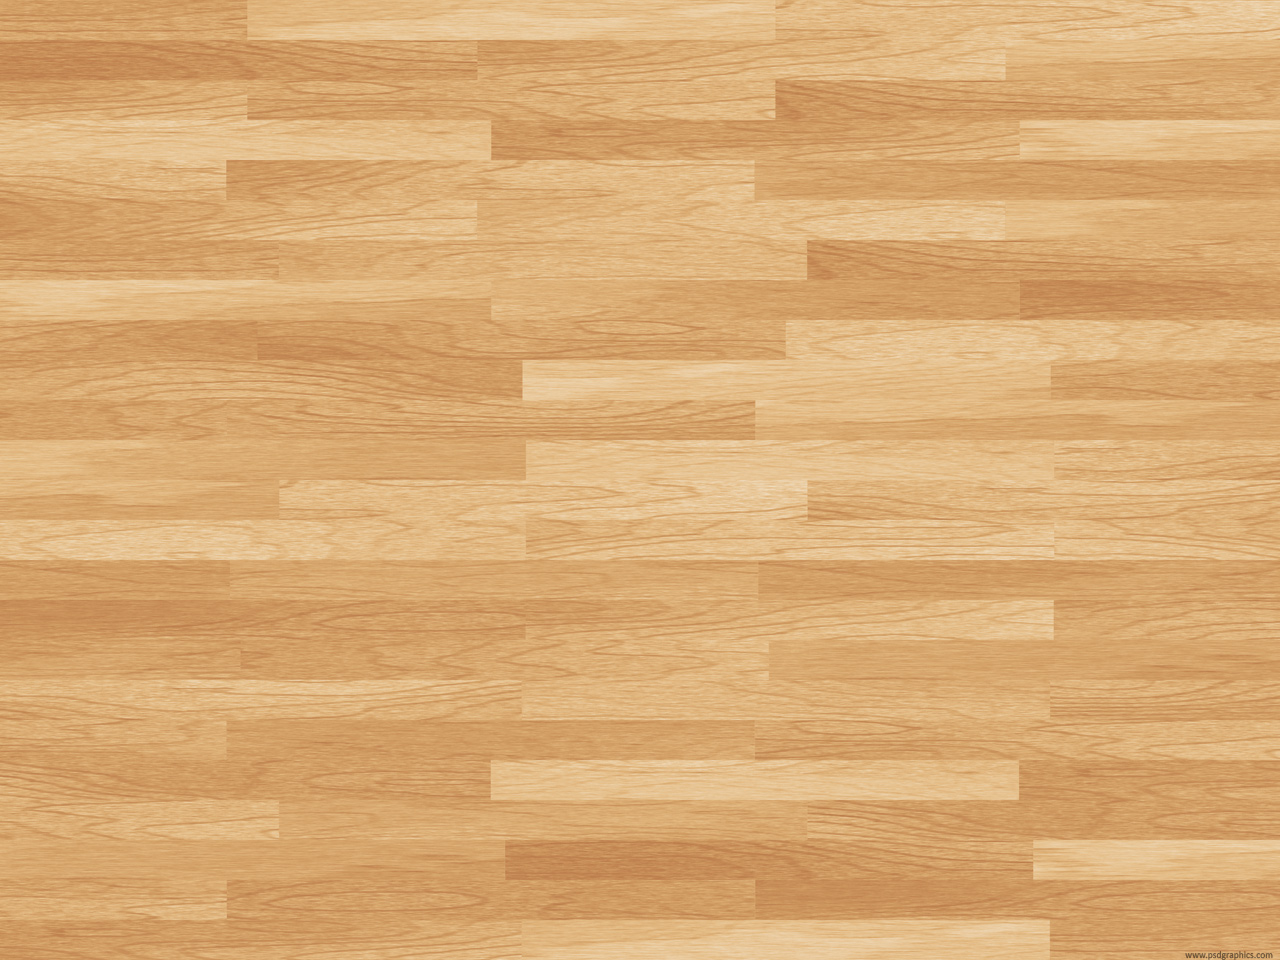 Wooden Floor clipart light wood Floor Floor Download Wooden Art